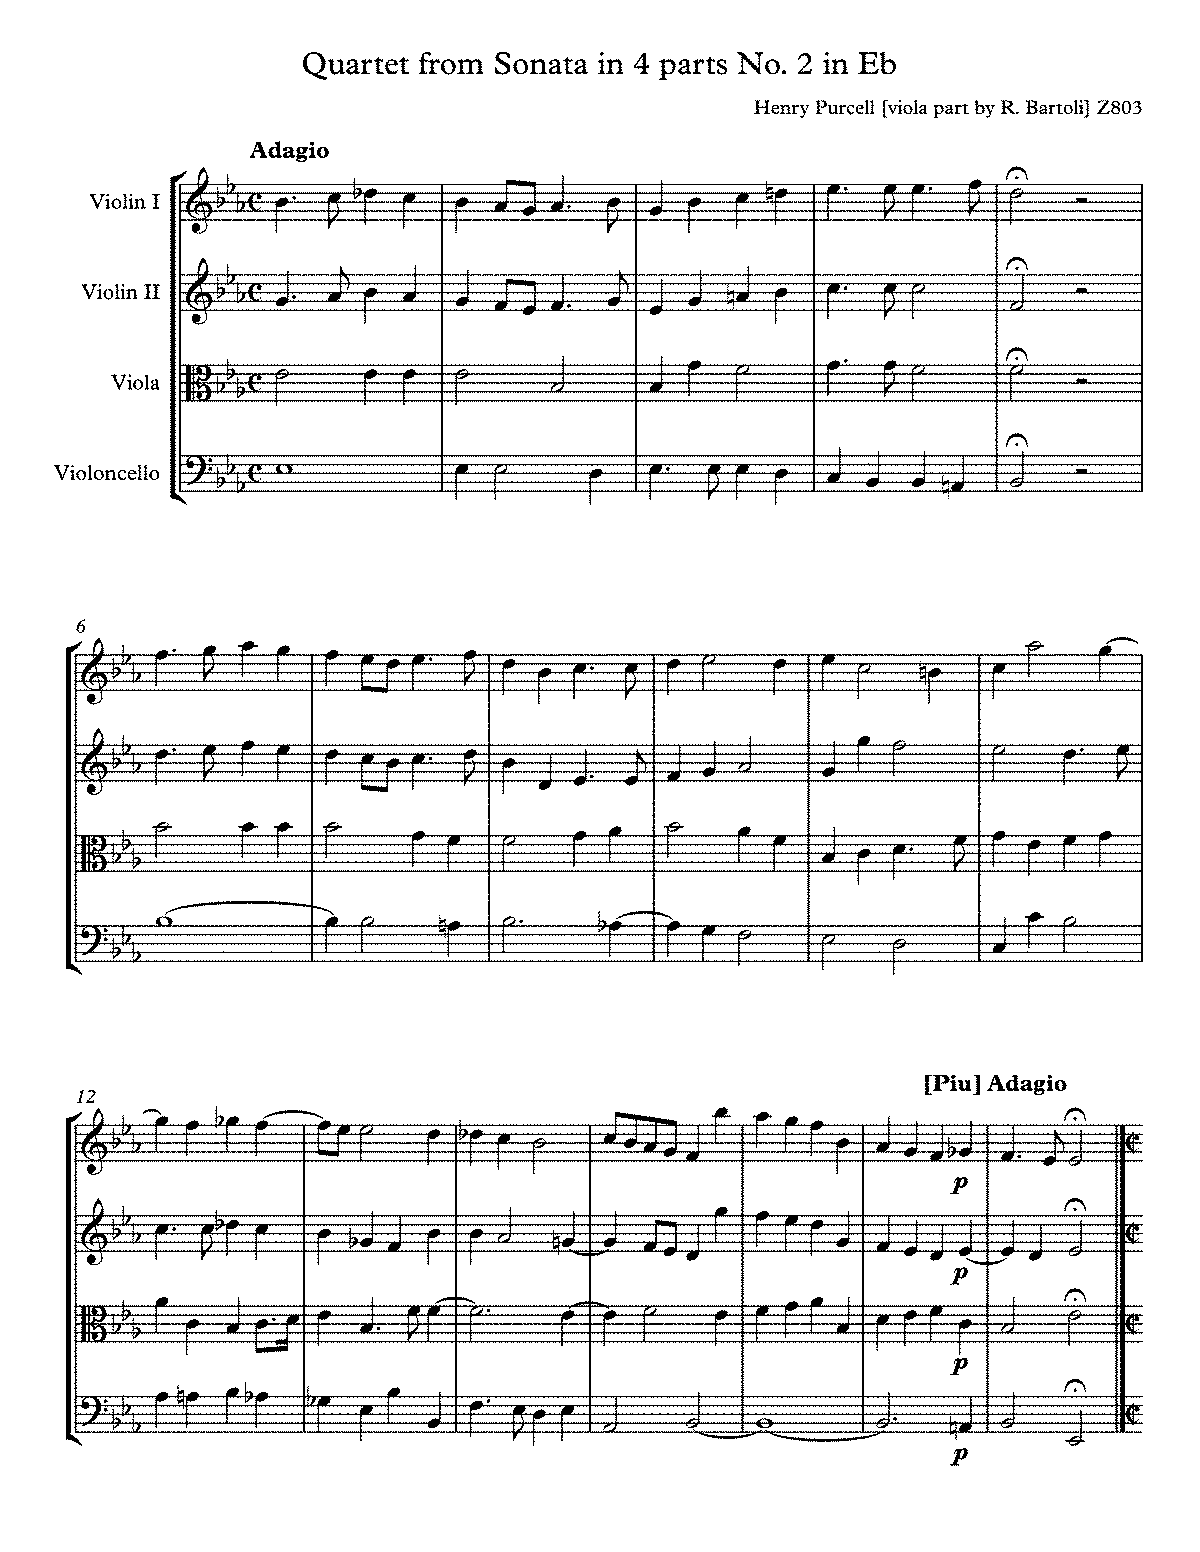 PMLP85784-Purcell Z803 Sonata in 4 parts No. 2 in Eb all parts russ D - Full Score.pdf